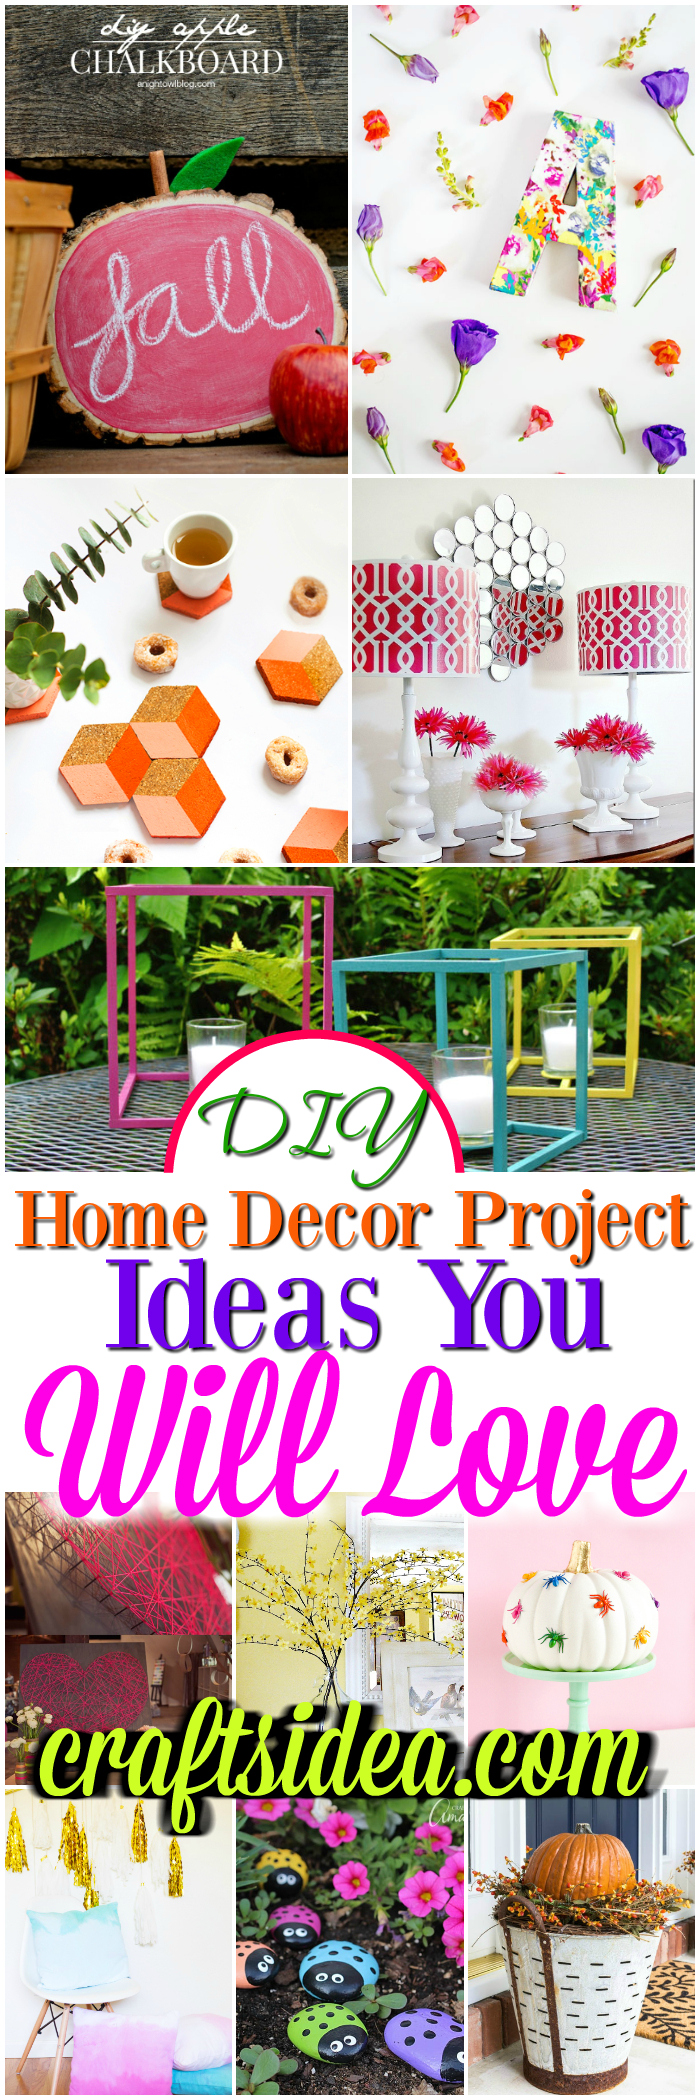 DIY Home Decor Project